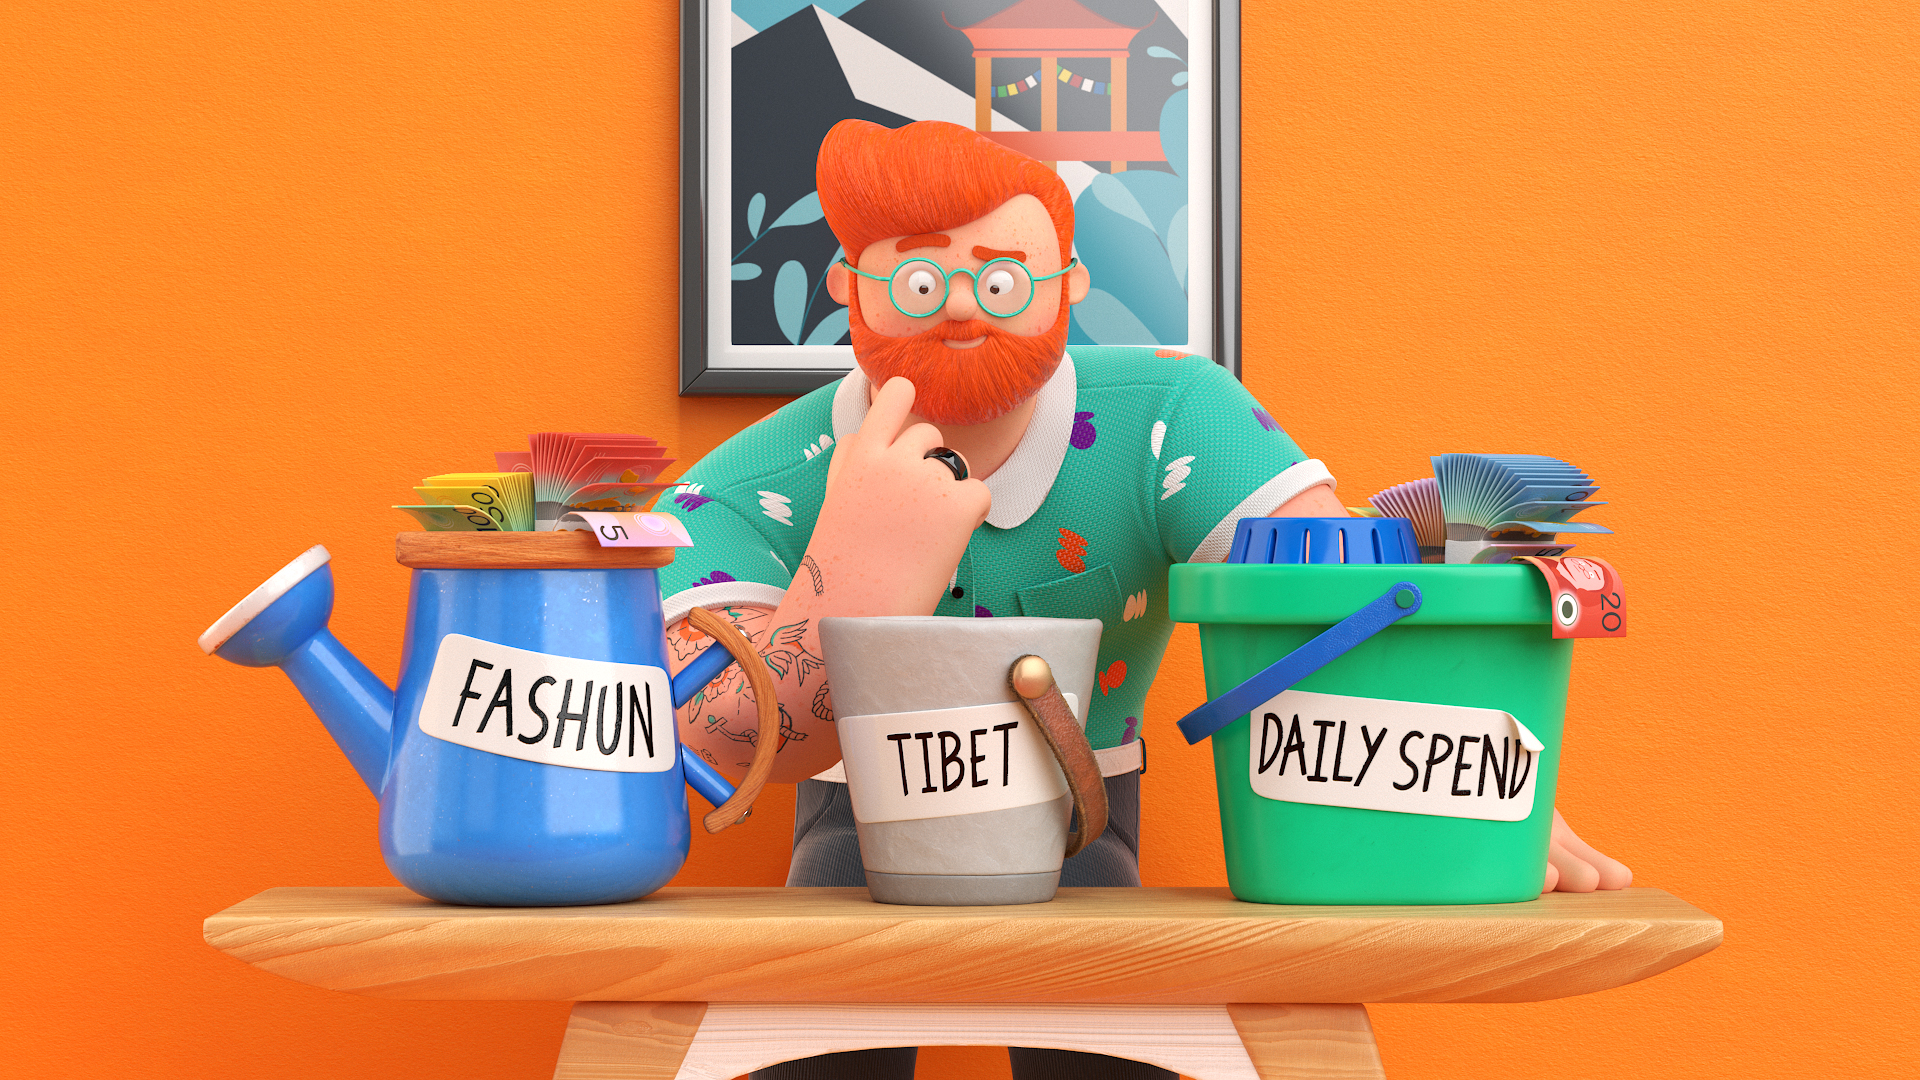 Bryce teaches Bankwest customers how to 'bucket' in new national campaign via Union